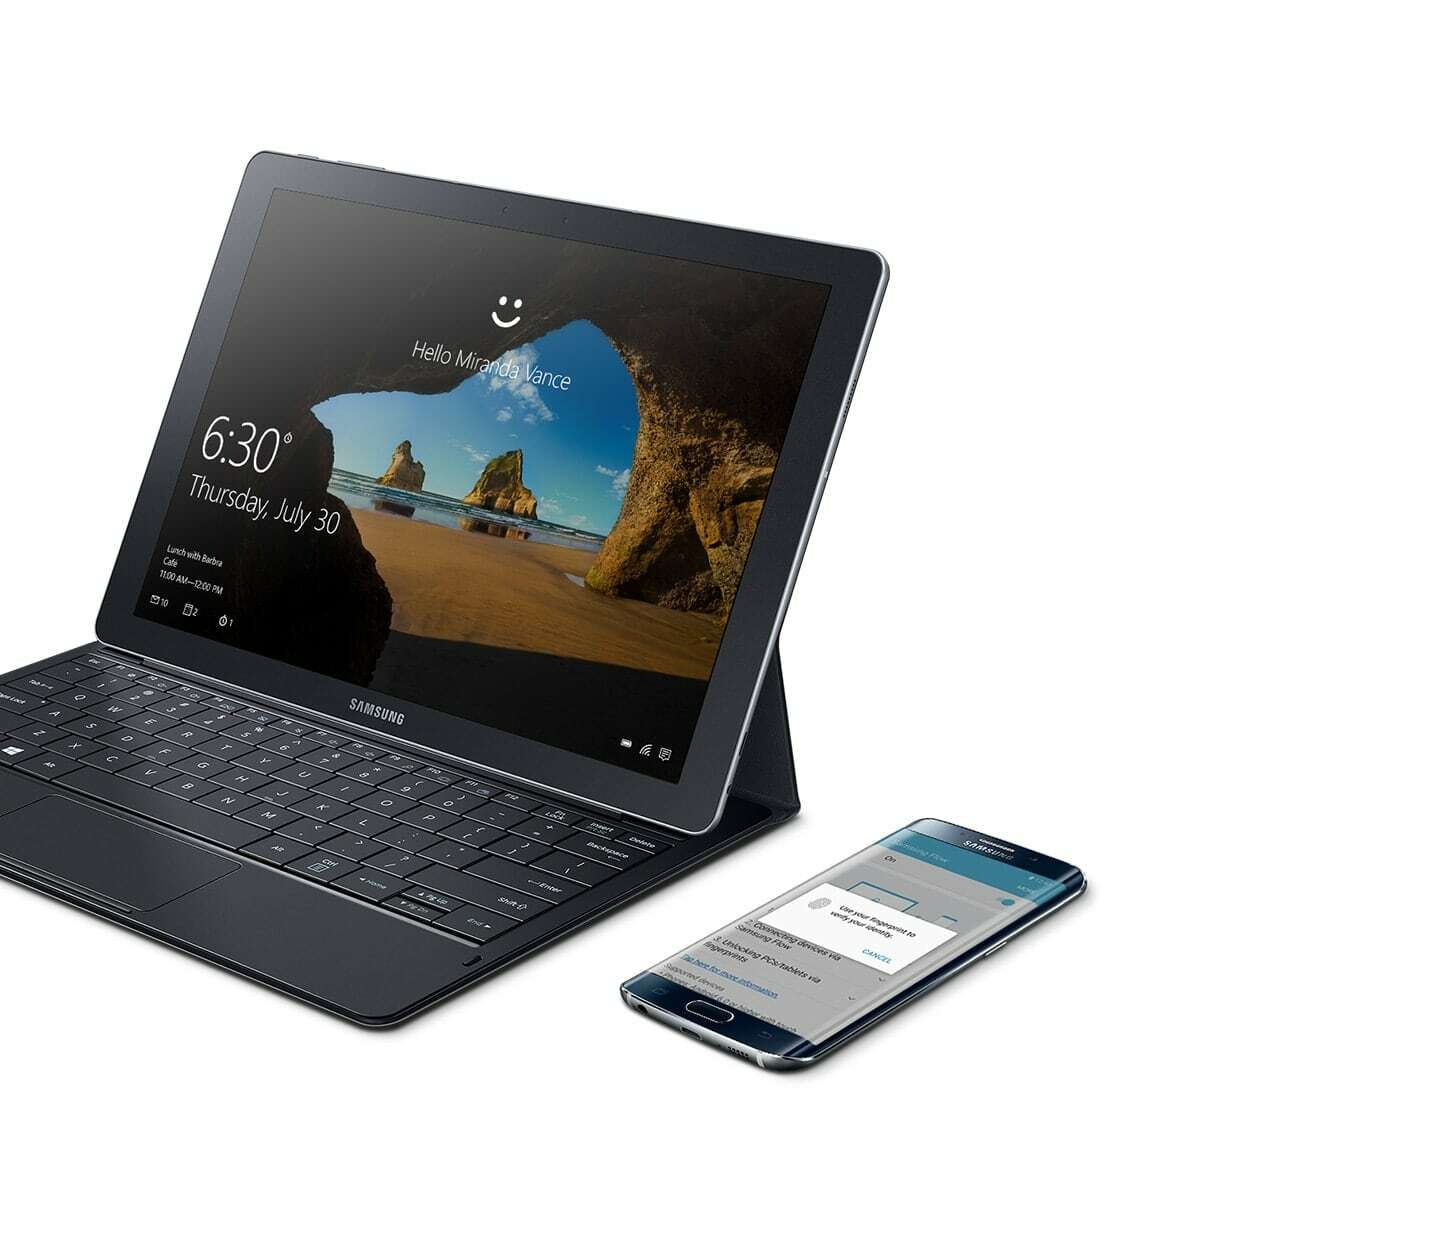 Galaxy TabPro S is next to Galaxy S7 edge where Samsung Flow app is on the screen.